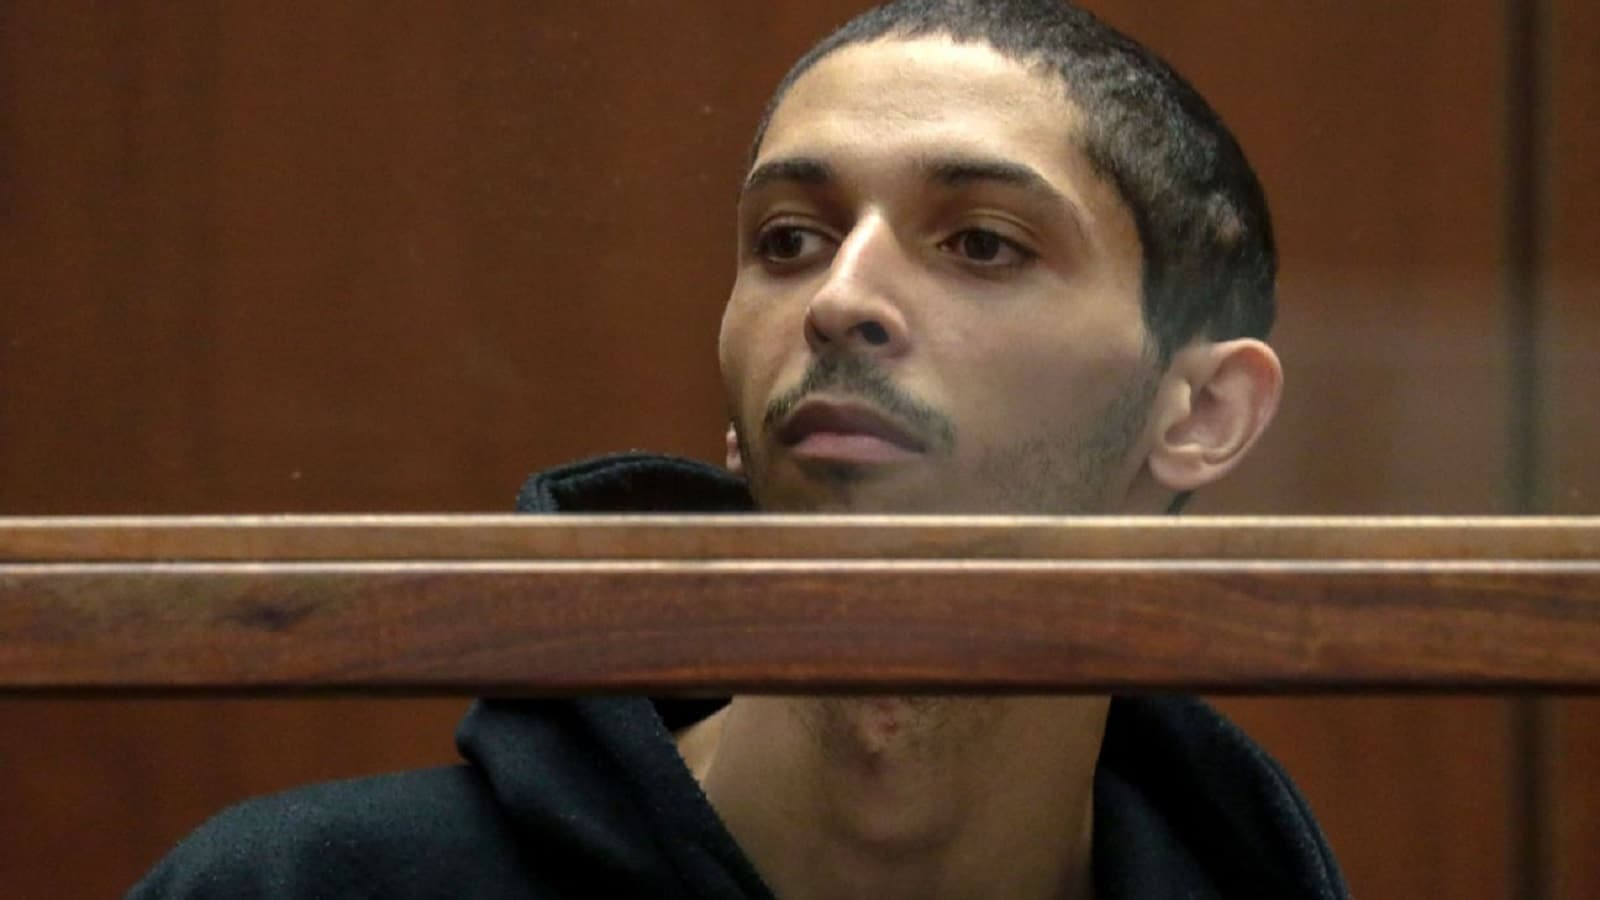 tyler barriss being sentenced to jail for swatting incident